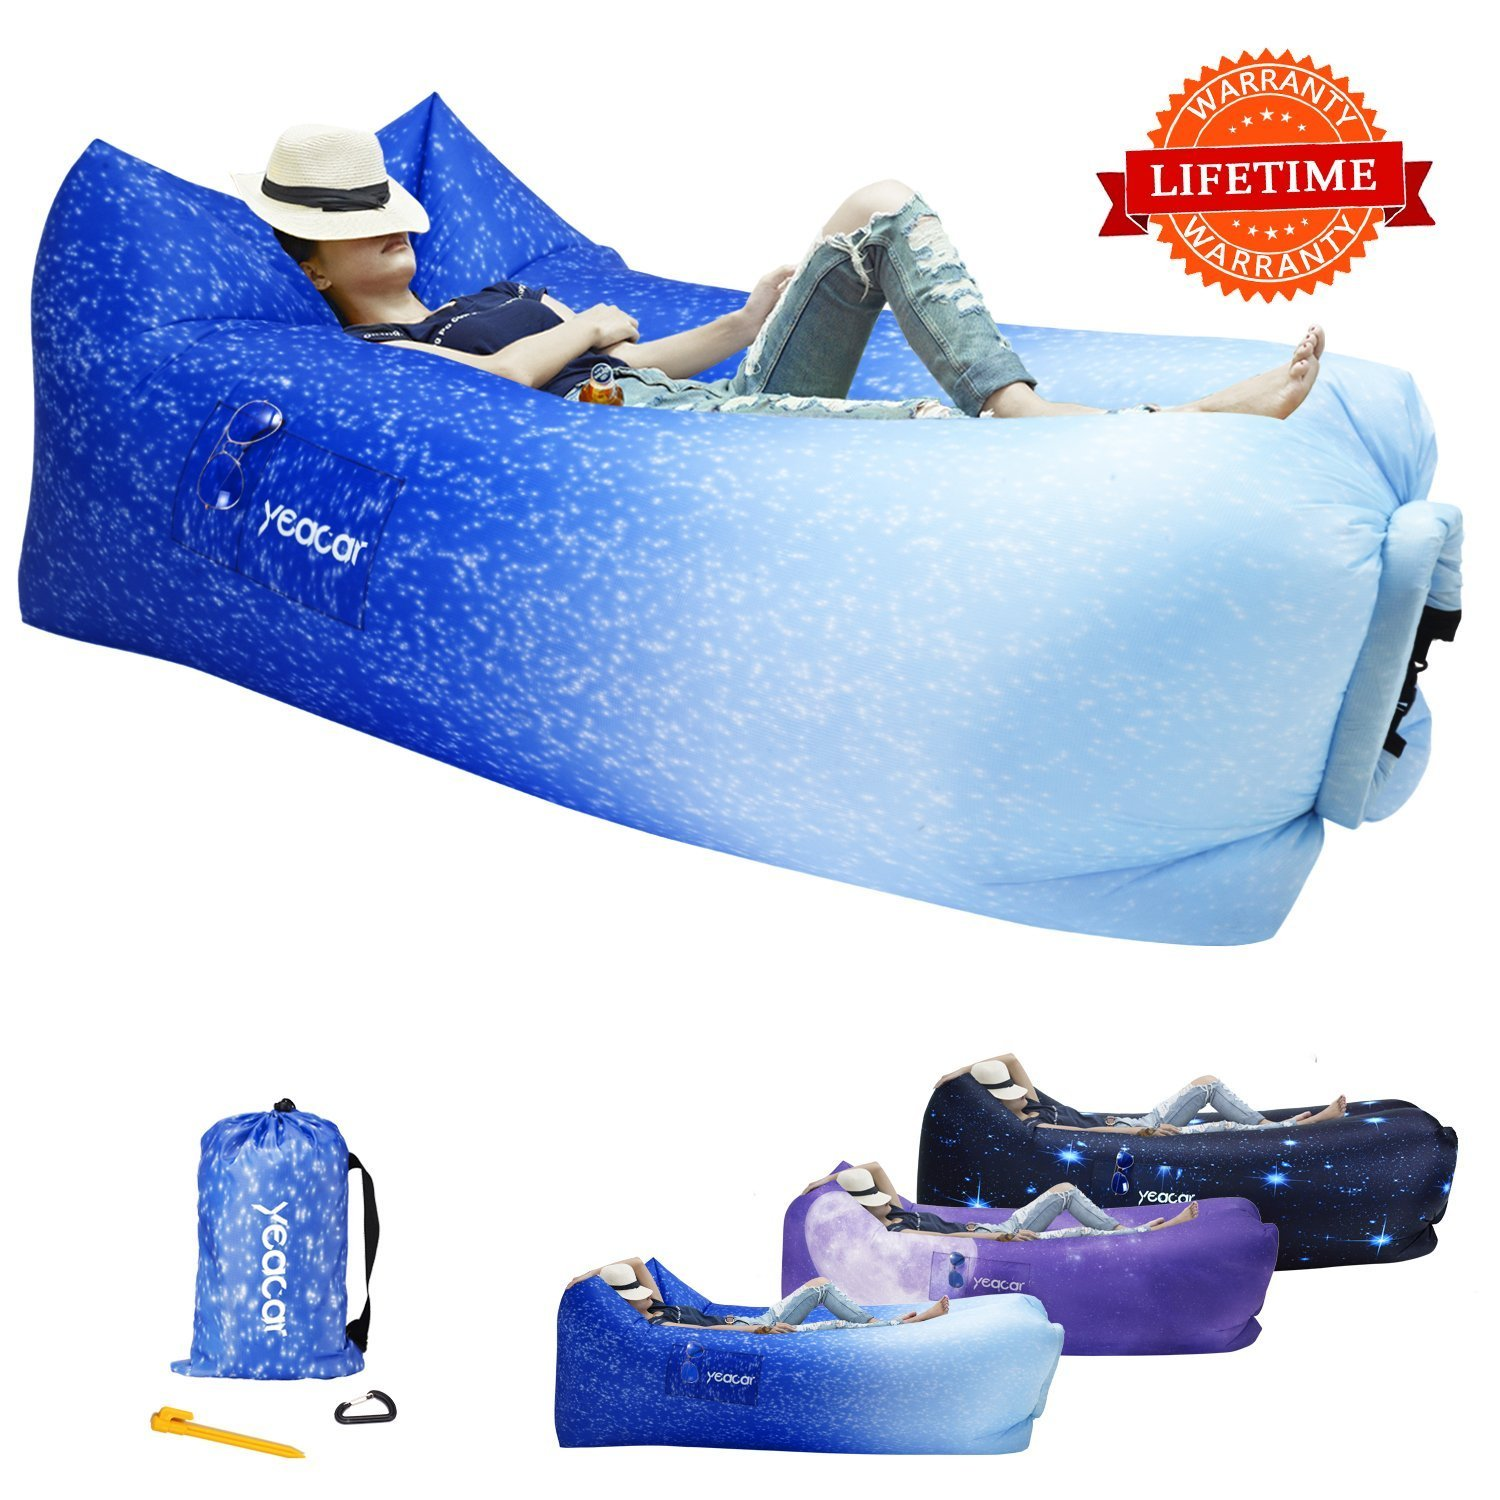 yeacar yeacar Inflatable Lounger Air Sofa, Portable Waterproof Indoor or Outdoor Inflatable Couch for Camping Park Beach (並行輸入品) B07CRLFX6X One Size|Dreamy Ocean Dreamy Ocean One Size